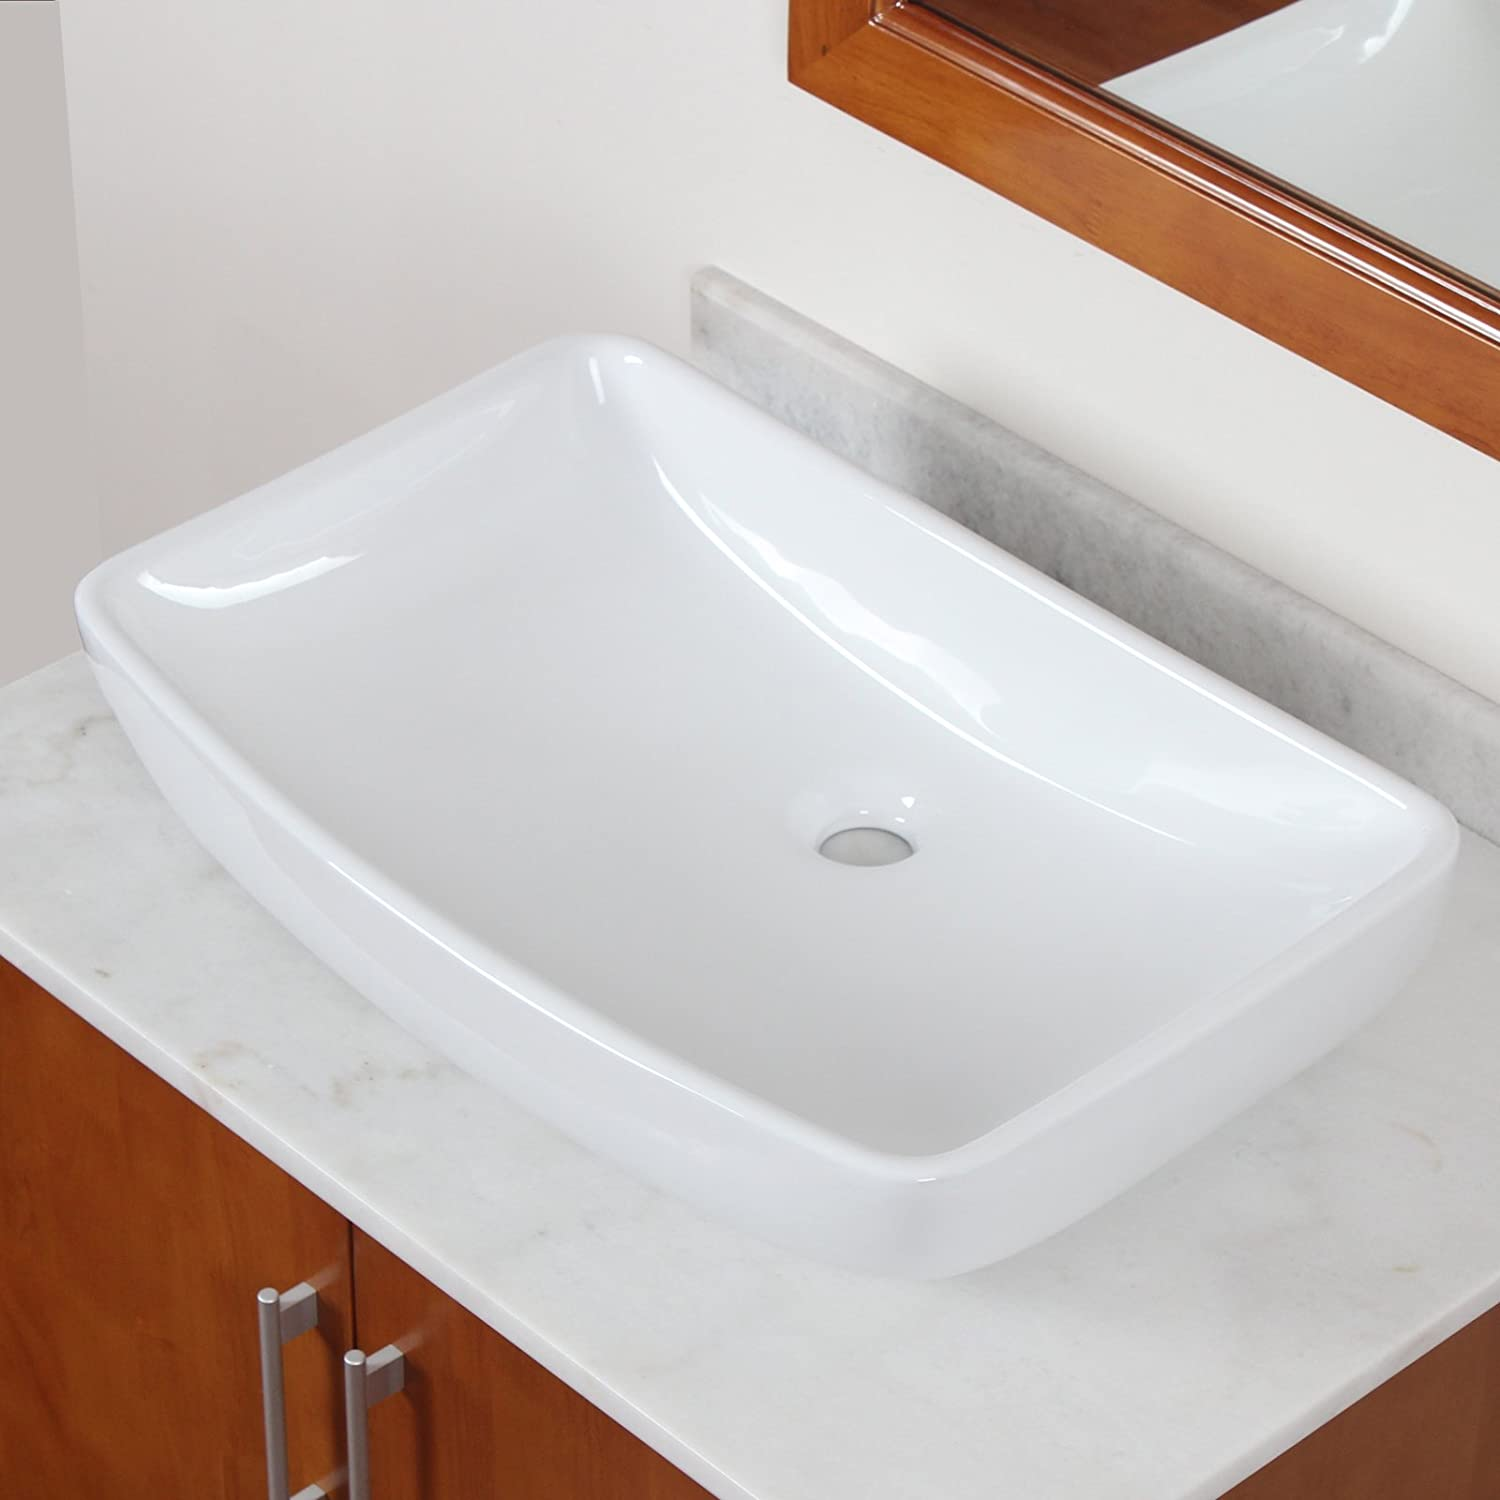 ELITE 10059 High Temperature Grade A Ceramic Bathroom Sink With Unique Rectangle Design, Color White